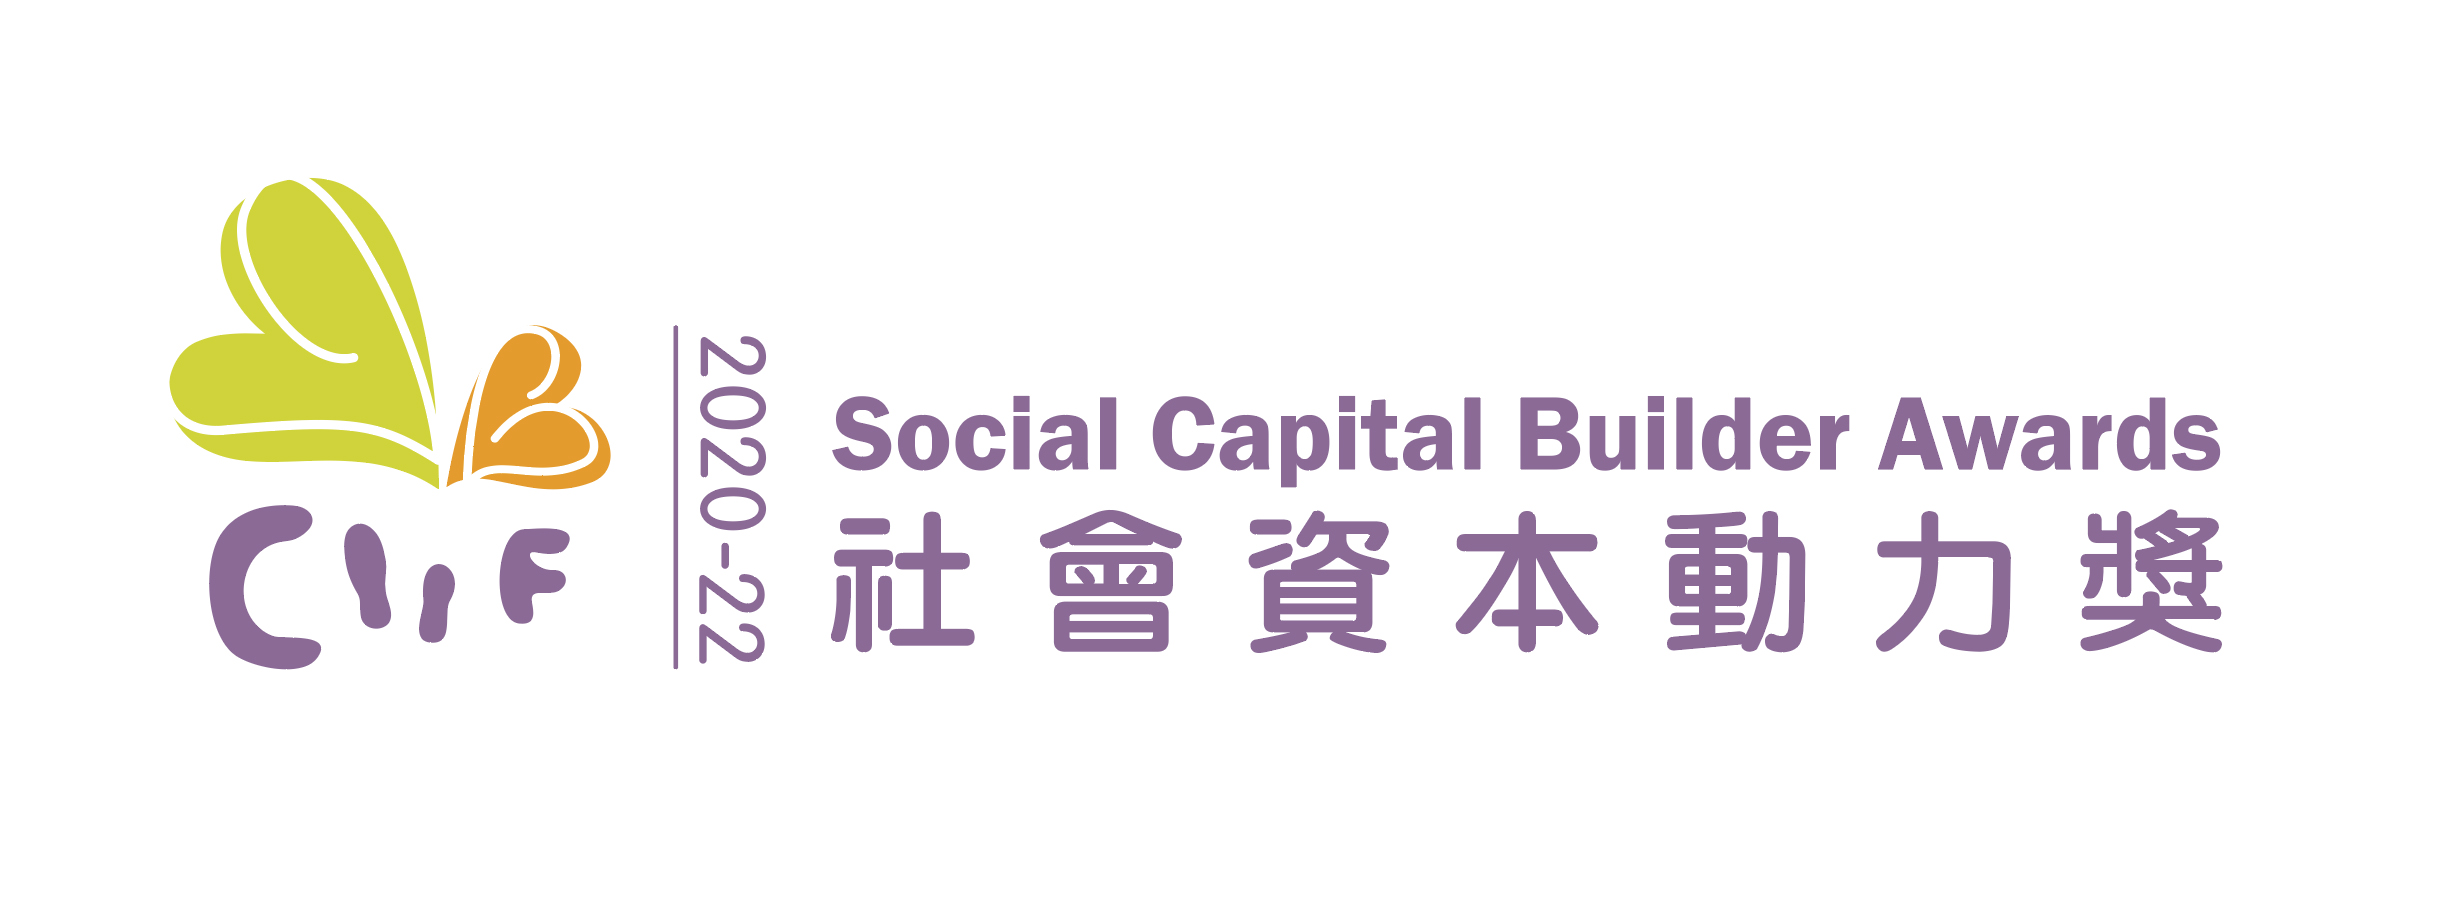 Social Capital Builder (SCB) Awards 2020